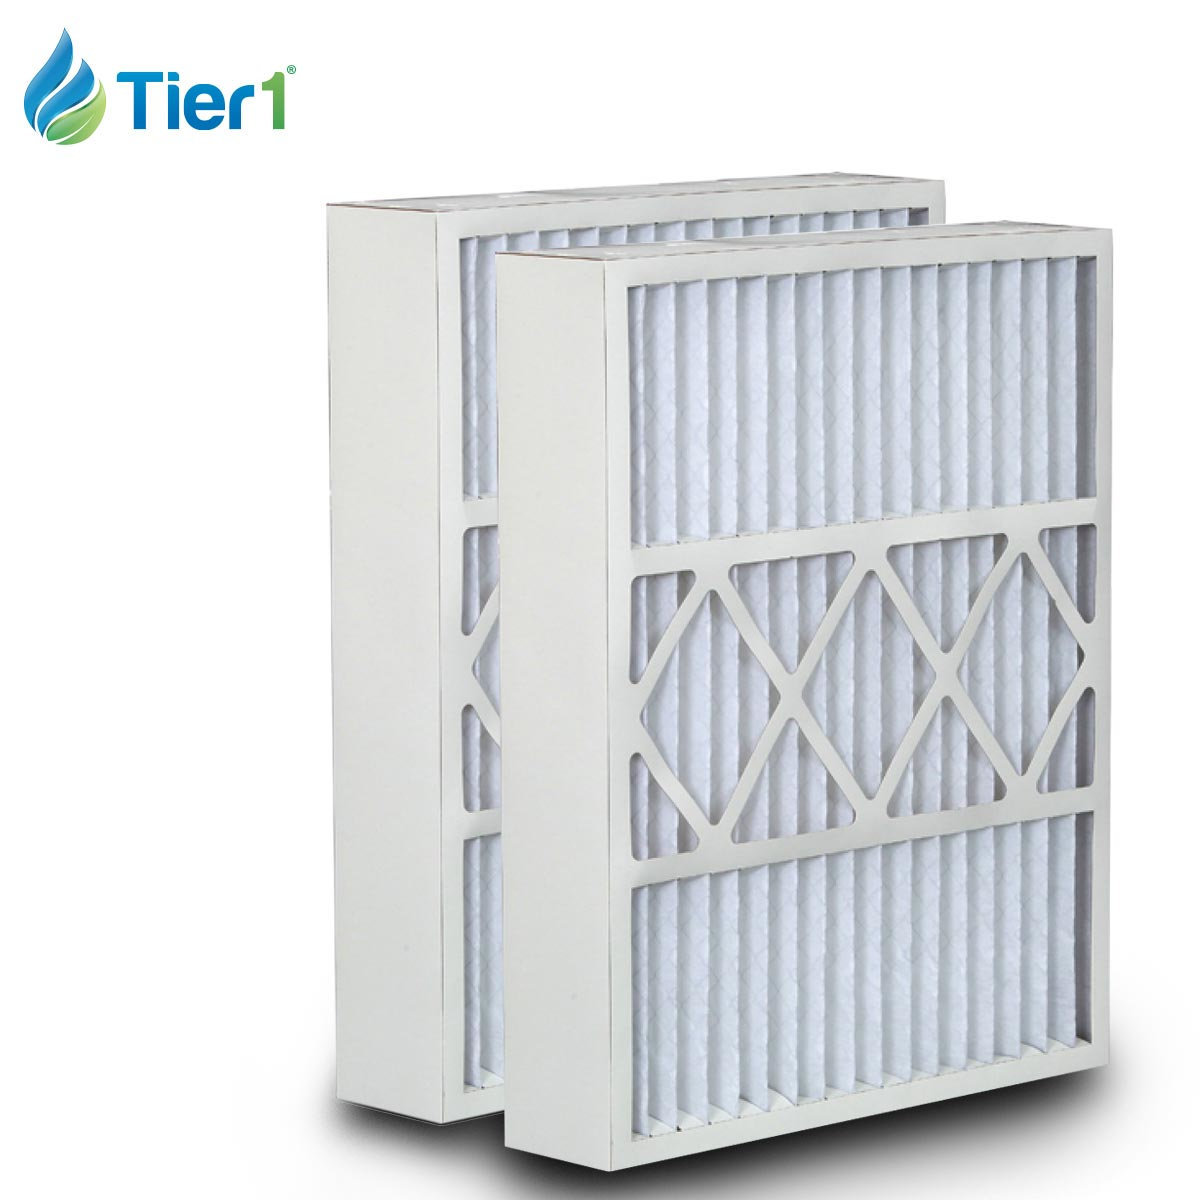 Tier1 brand replacement for Electro Air - 20 x 26 x 5 - MERV 11 (2-Pack) TIER1-DPFI20X26X5M11DEA